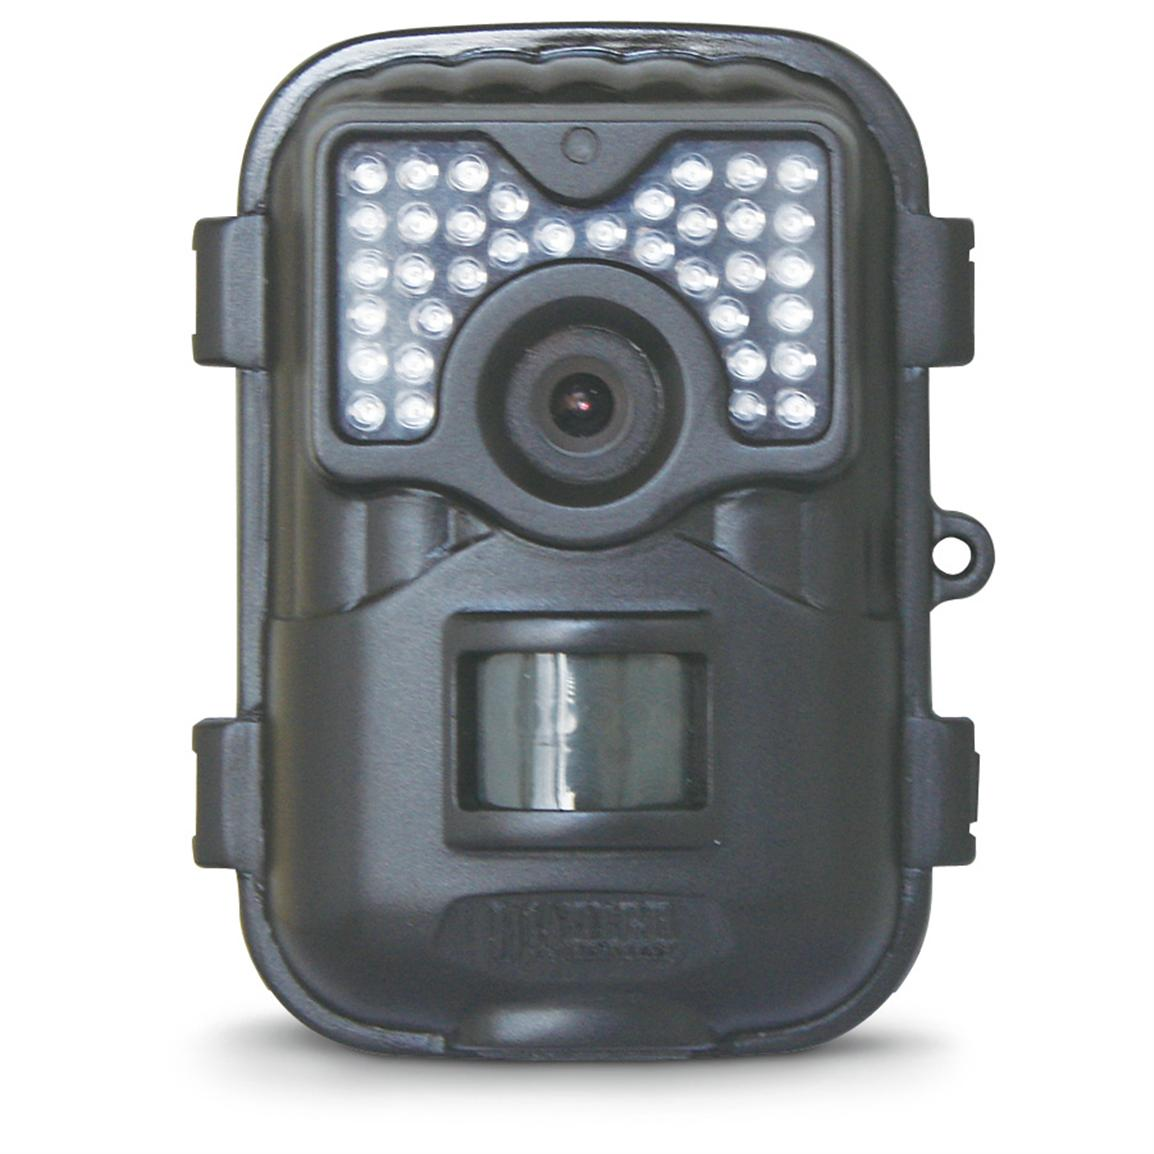 Hunten Outdoors 4.0MP Infrared Trail Camera